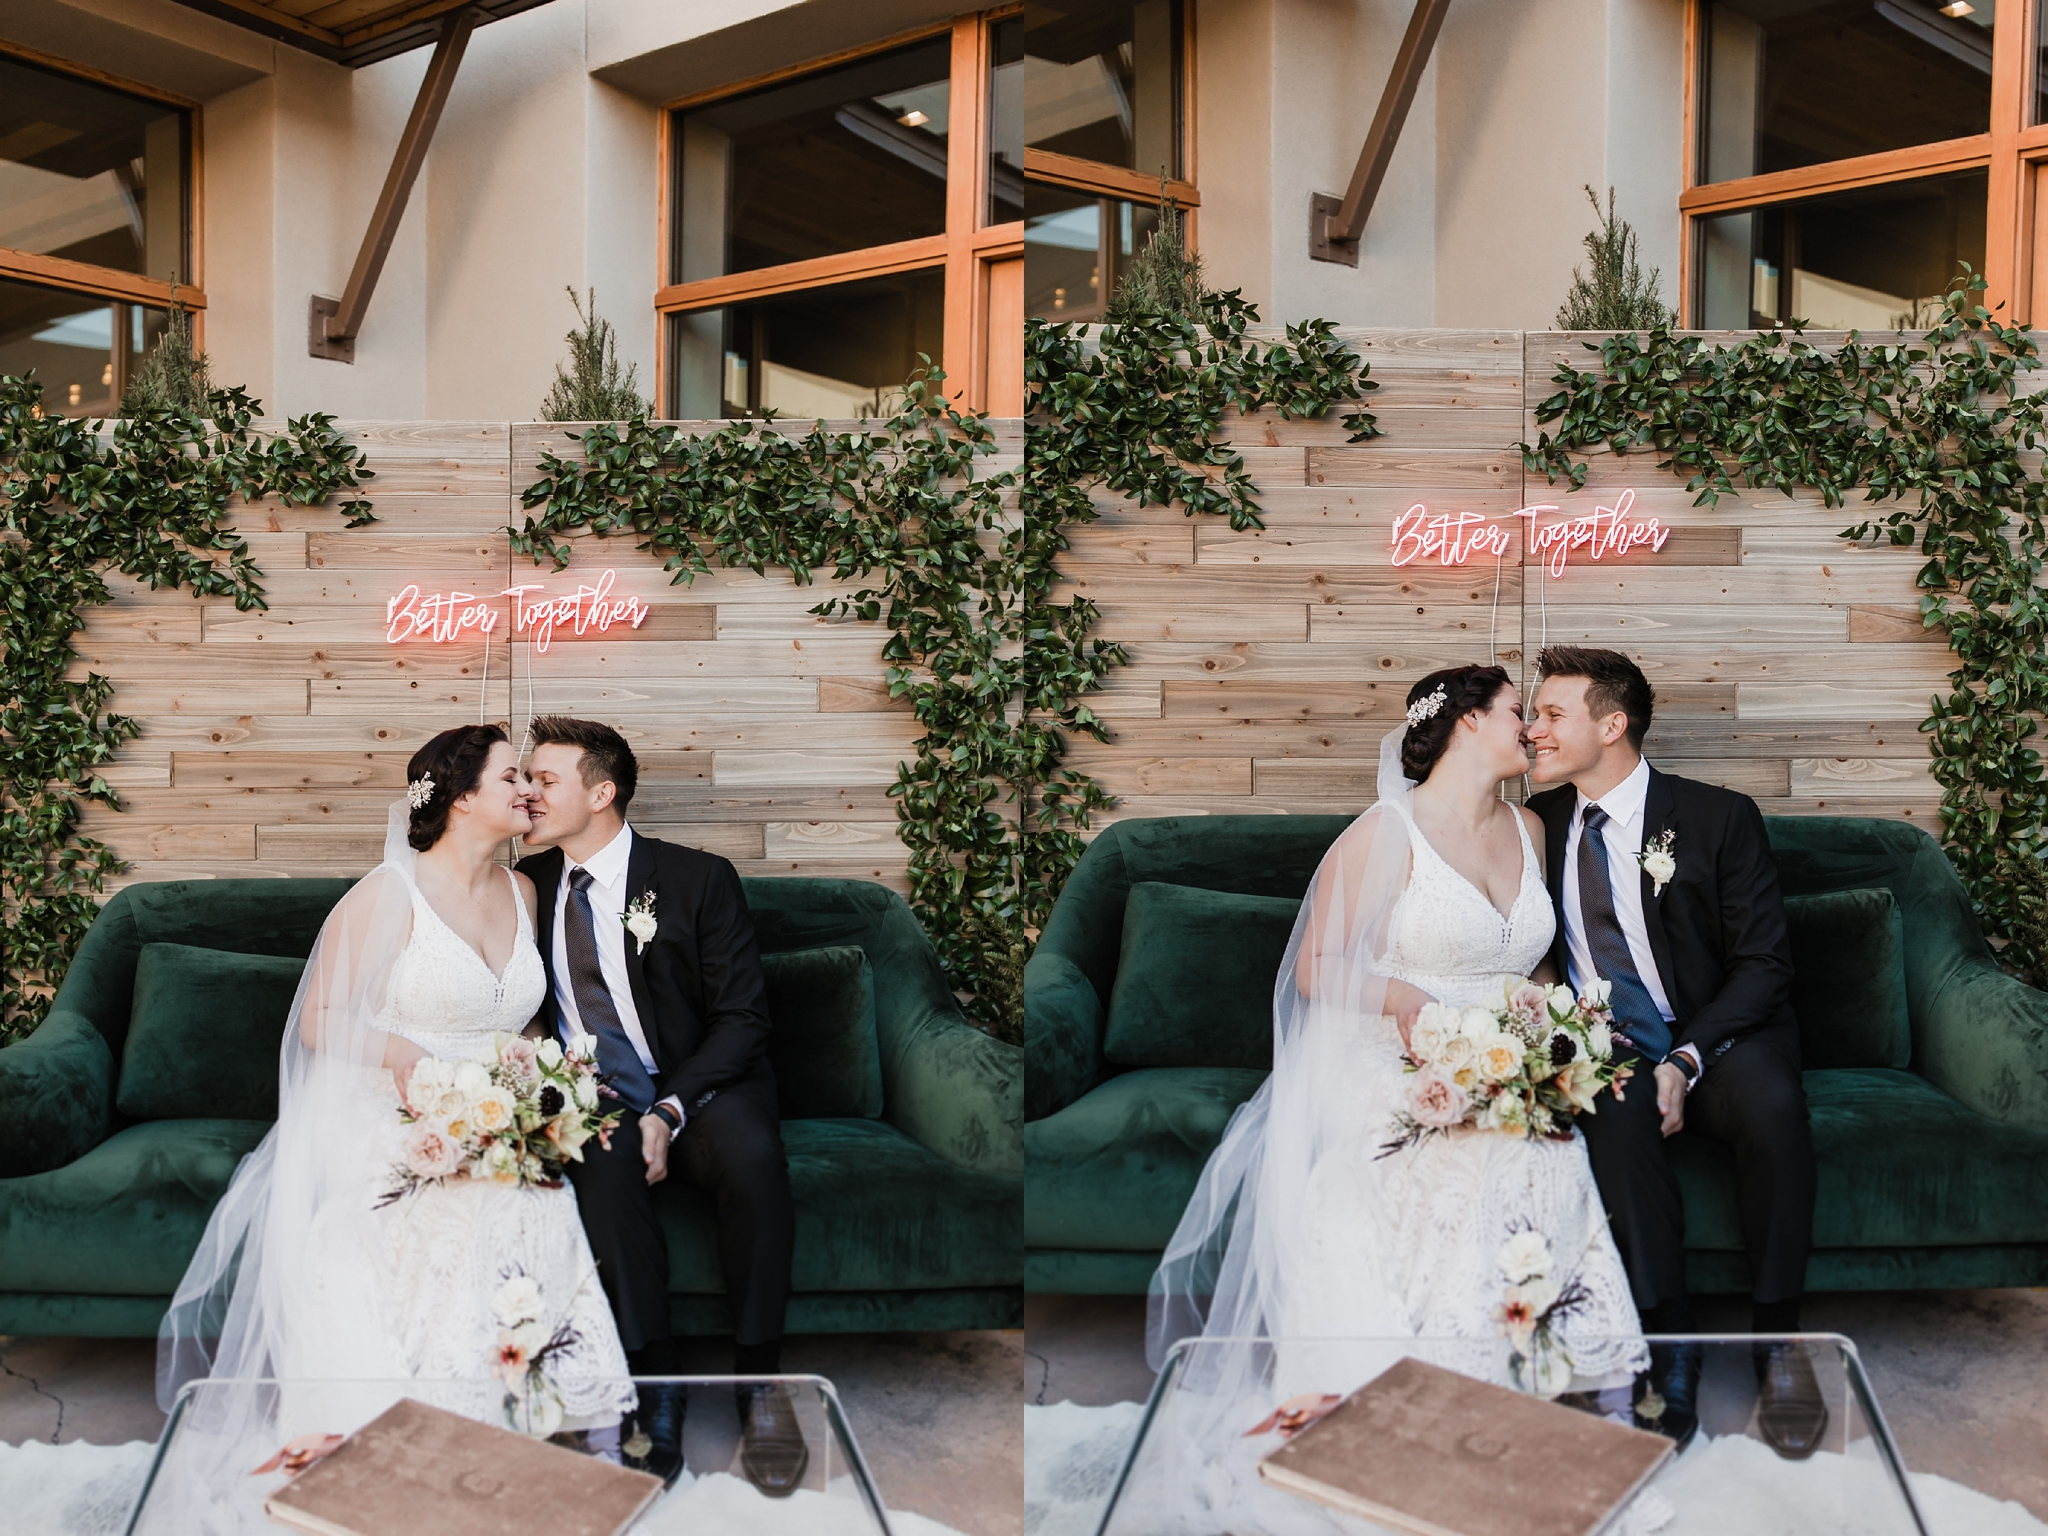 Alicia+lucia+photography+-+albuquerque+wedding+photographer+-+santa+fe+wedding+photography+-+new+mexico+wedding+photographer+-+new+mexico+wedding+-+santa+fe+wedding+-+four+seasons+wedding+-+winter+wedding_0134.jpg